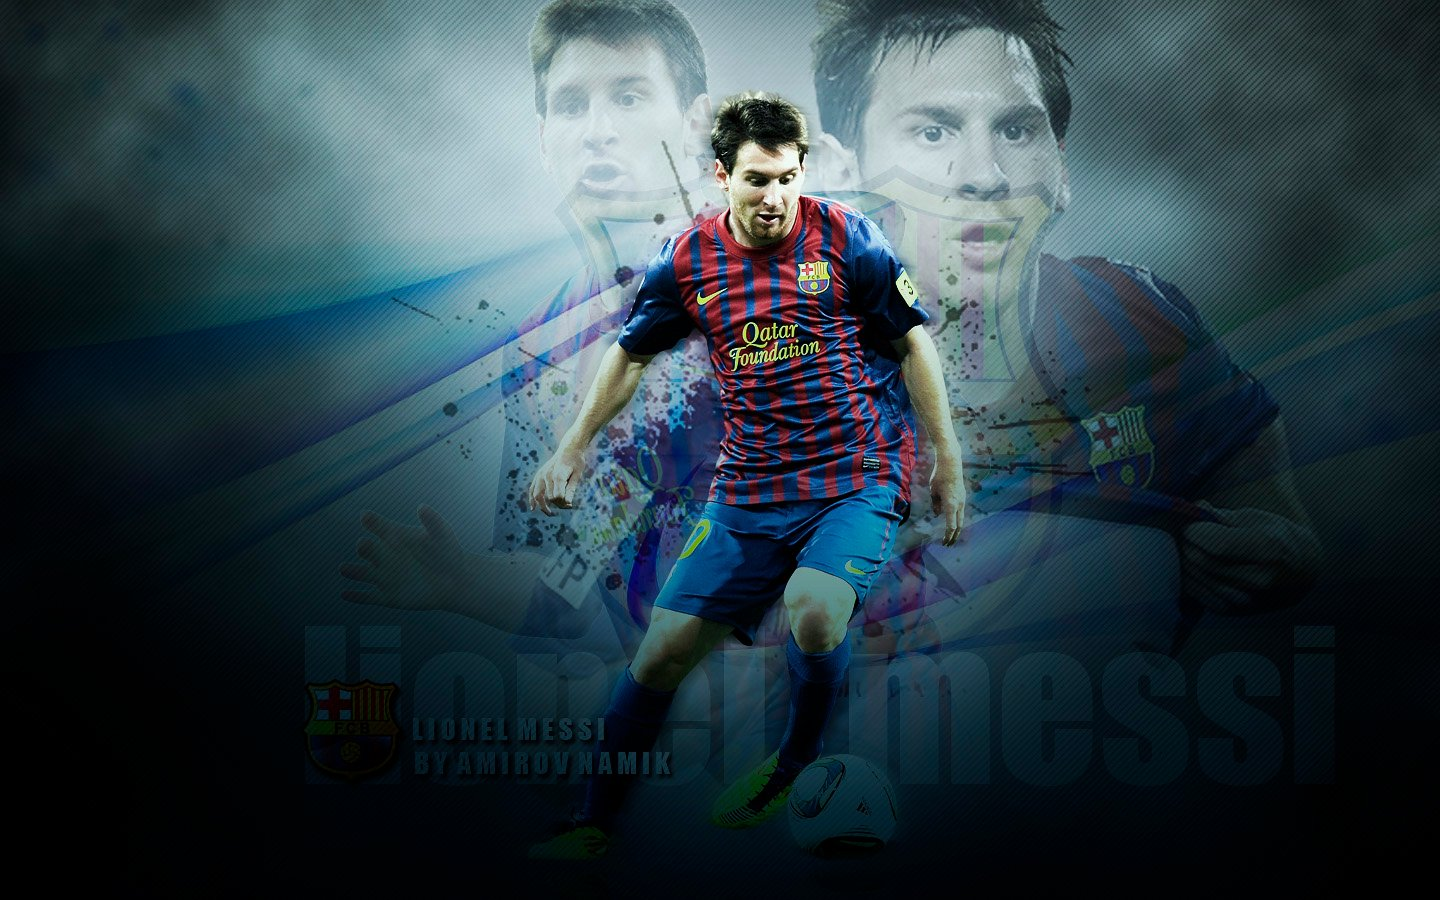 Lionel Messi Latest HD Wallpapers 2012 2013 All About HD Wallpapers 1440x900